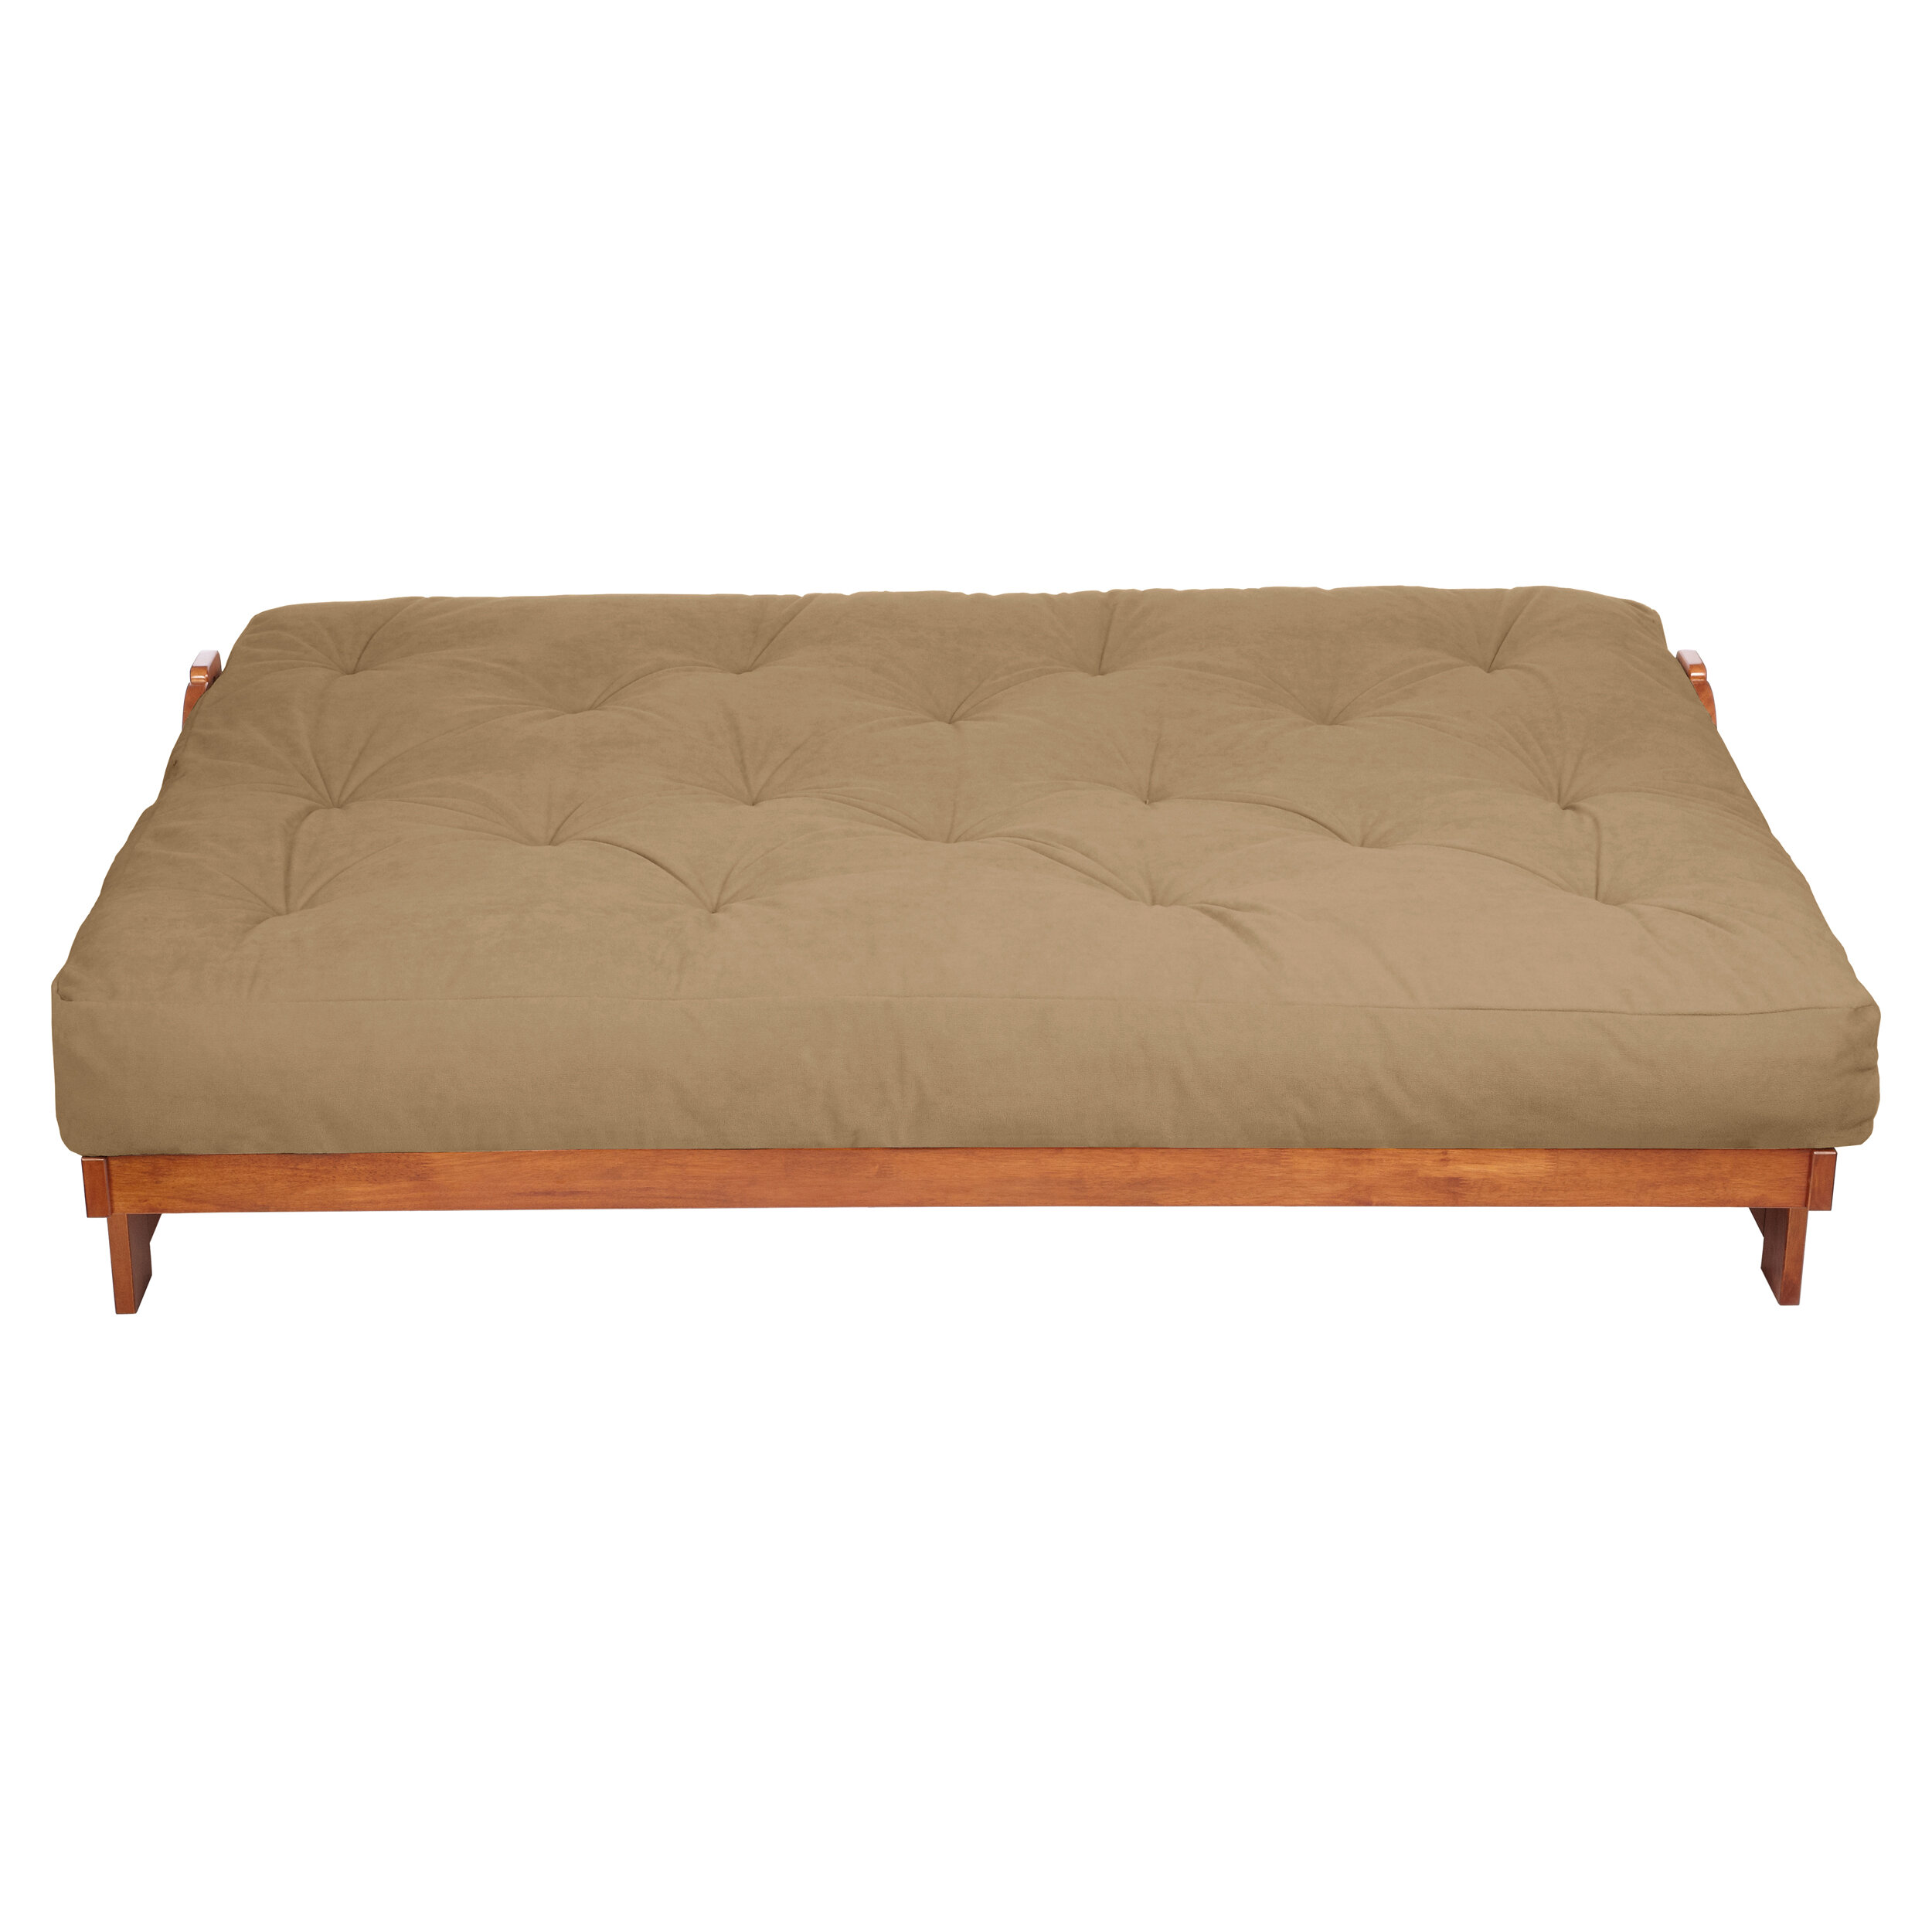 dimensions futon amazon plans size and target walmart measurements covers mattress queen frame cover